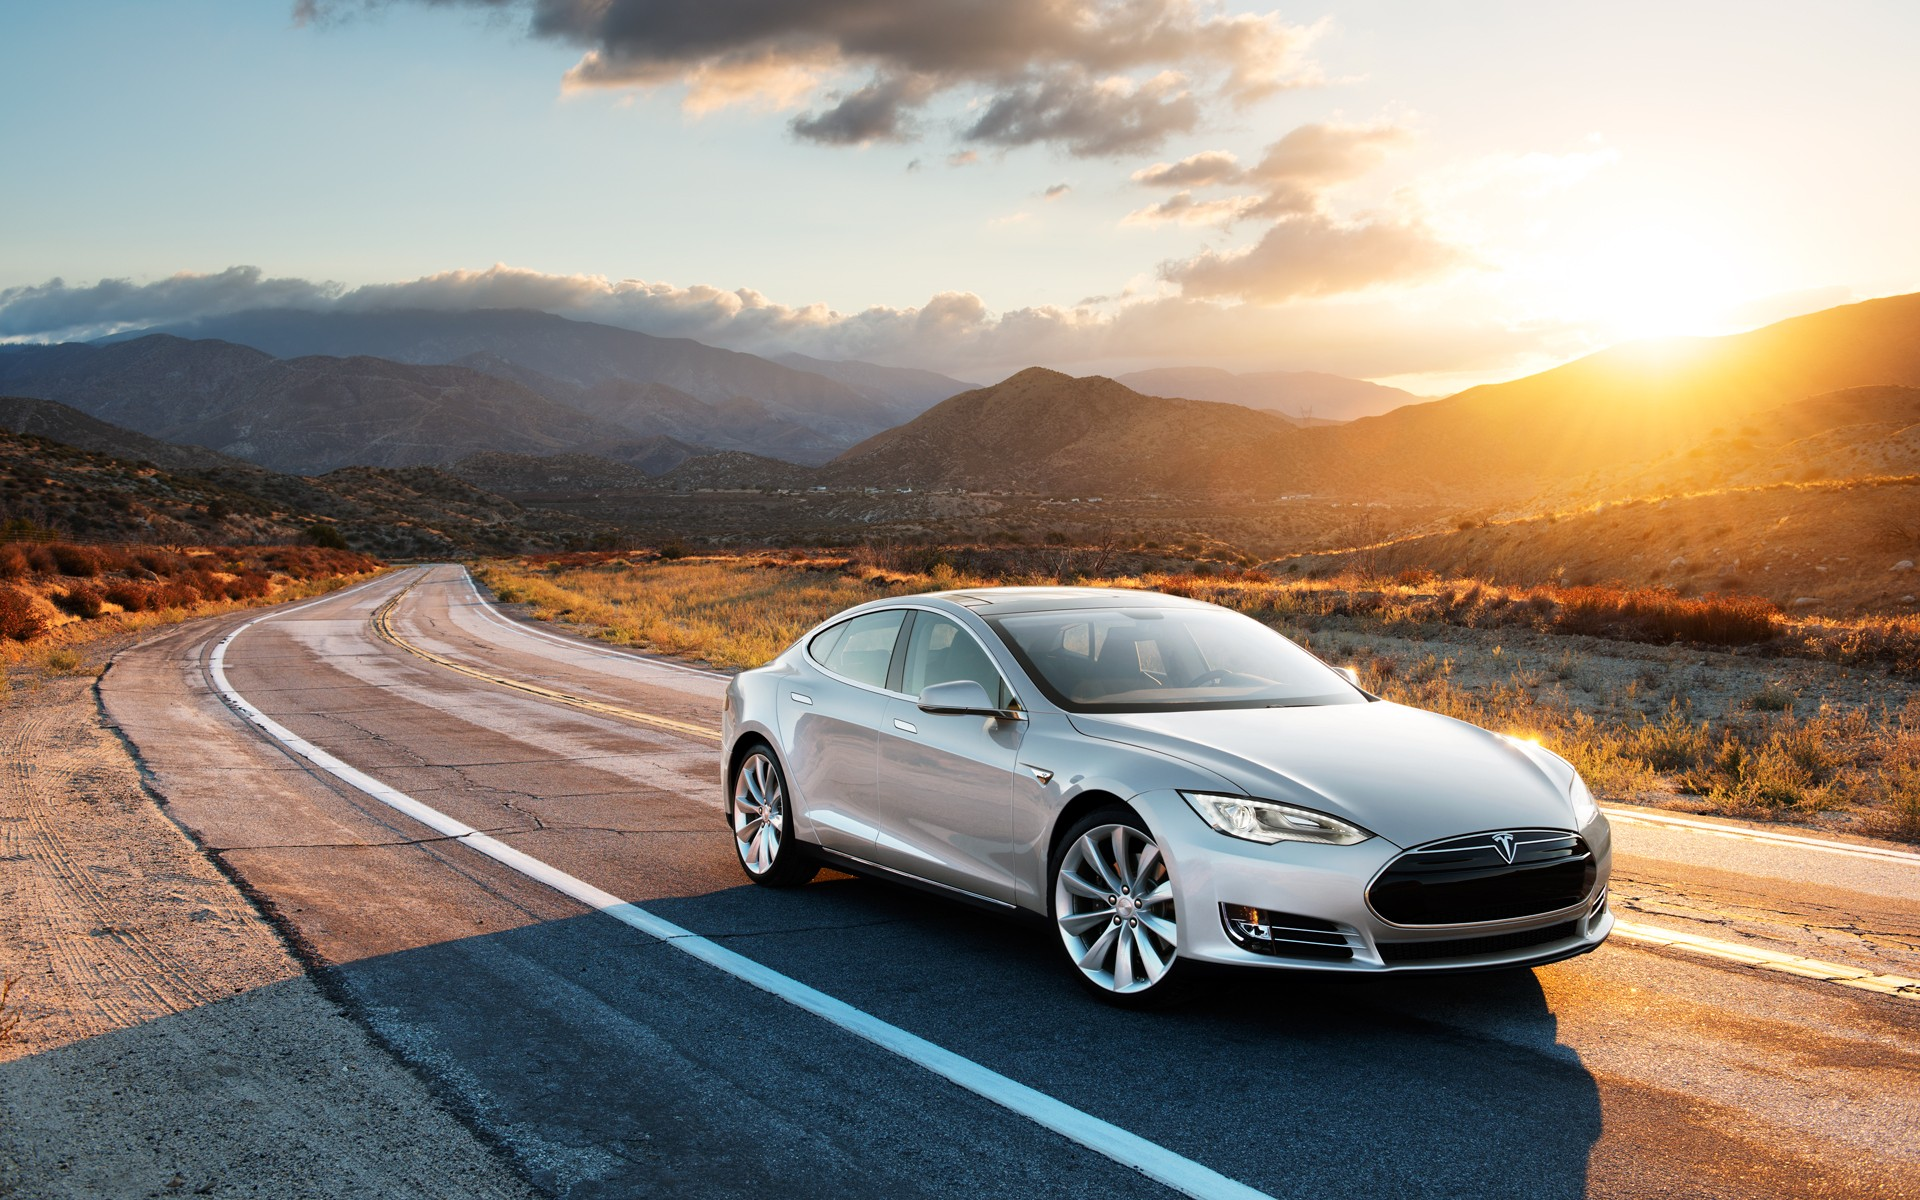 Tesla Model S Metal Res: 1920x1200 / Size:611kb. Views: 9031